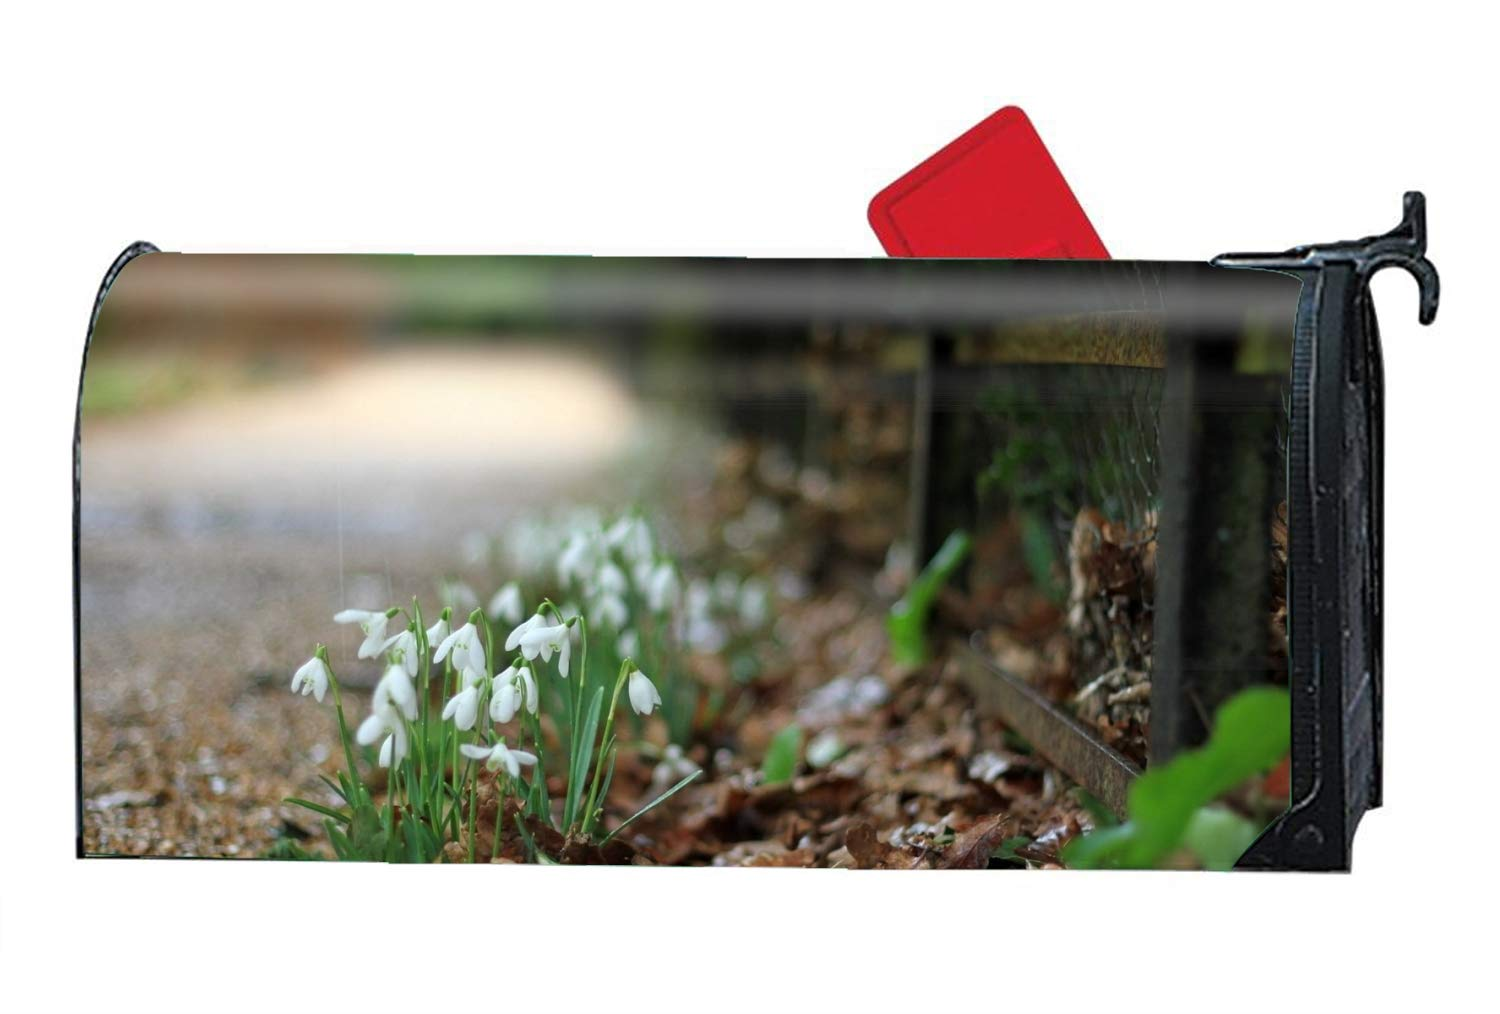 Niaocpwy Seasonal Magnetic Mailbox Cover Earth Flowers Mailbox Makeover Garden Decoration Standard